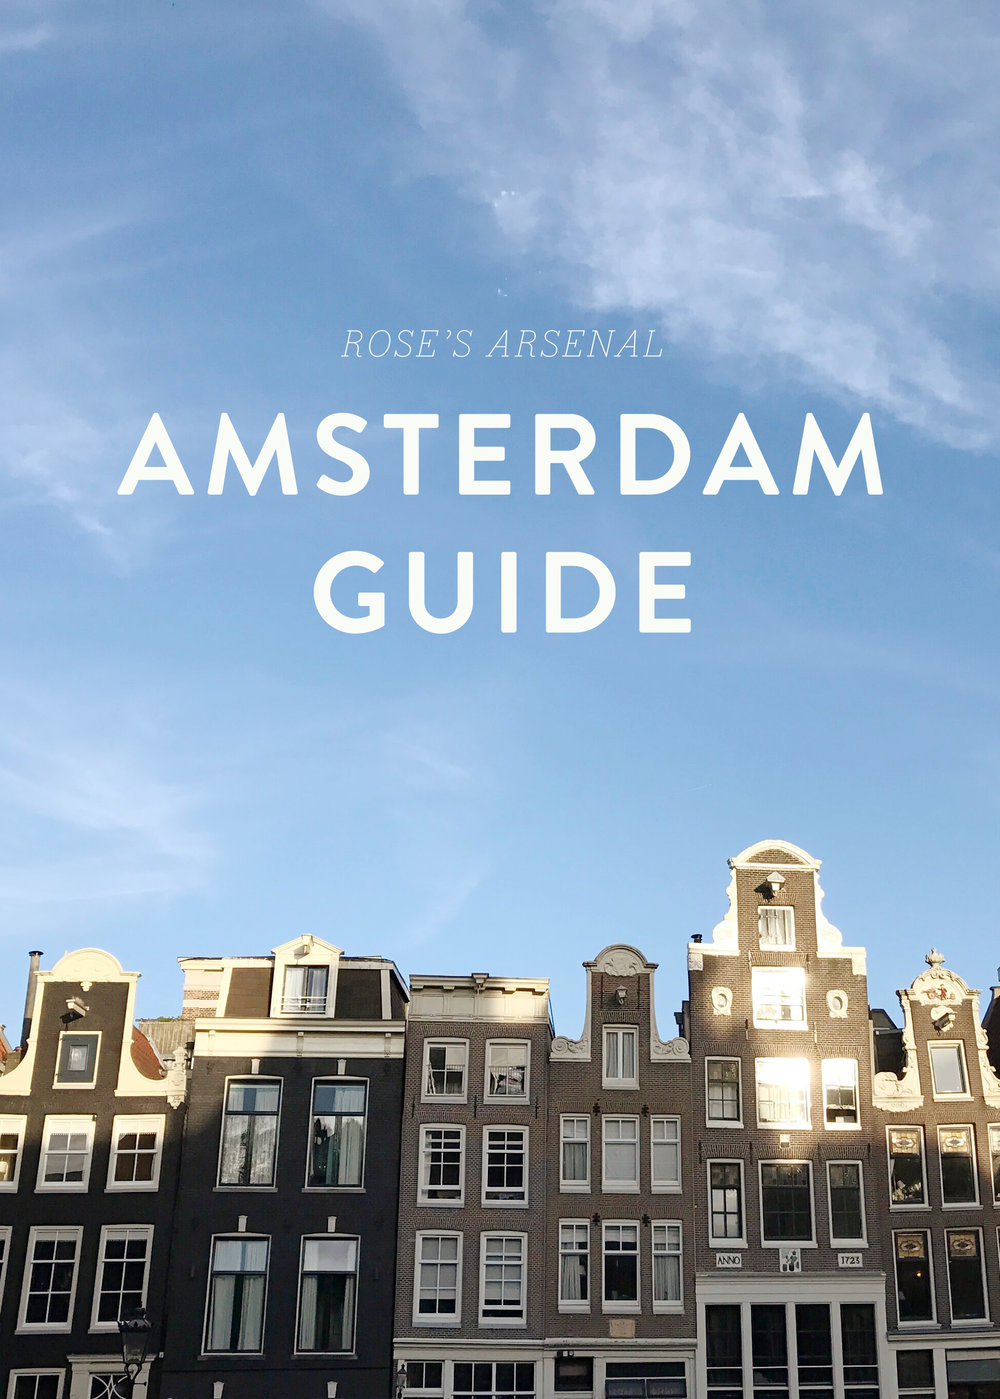 Rose's Arsenal Amsterdam Guide